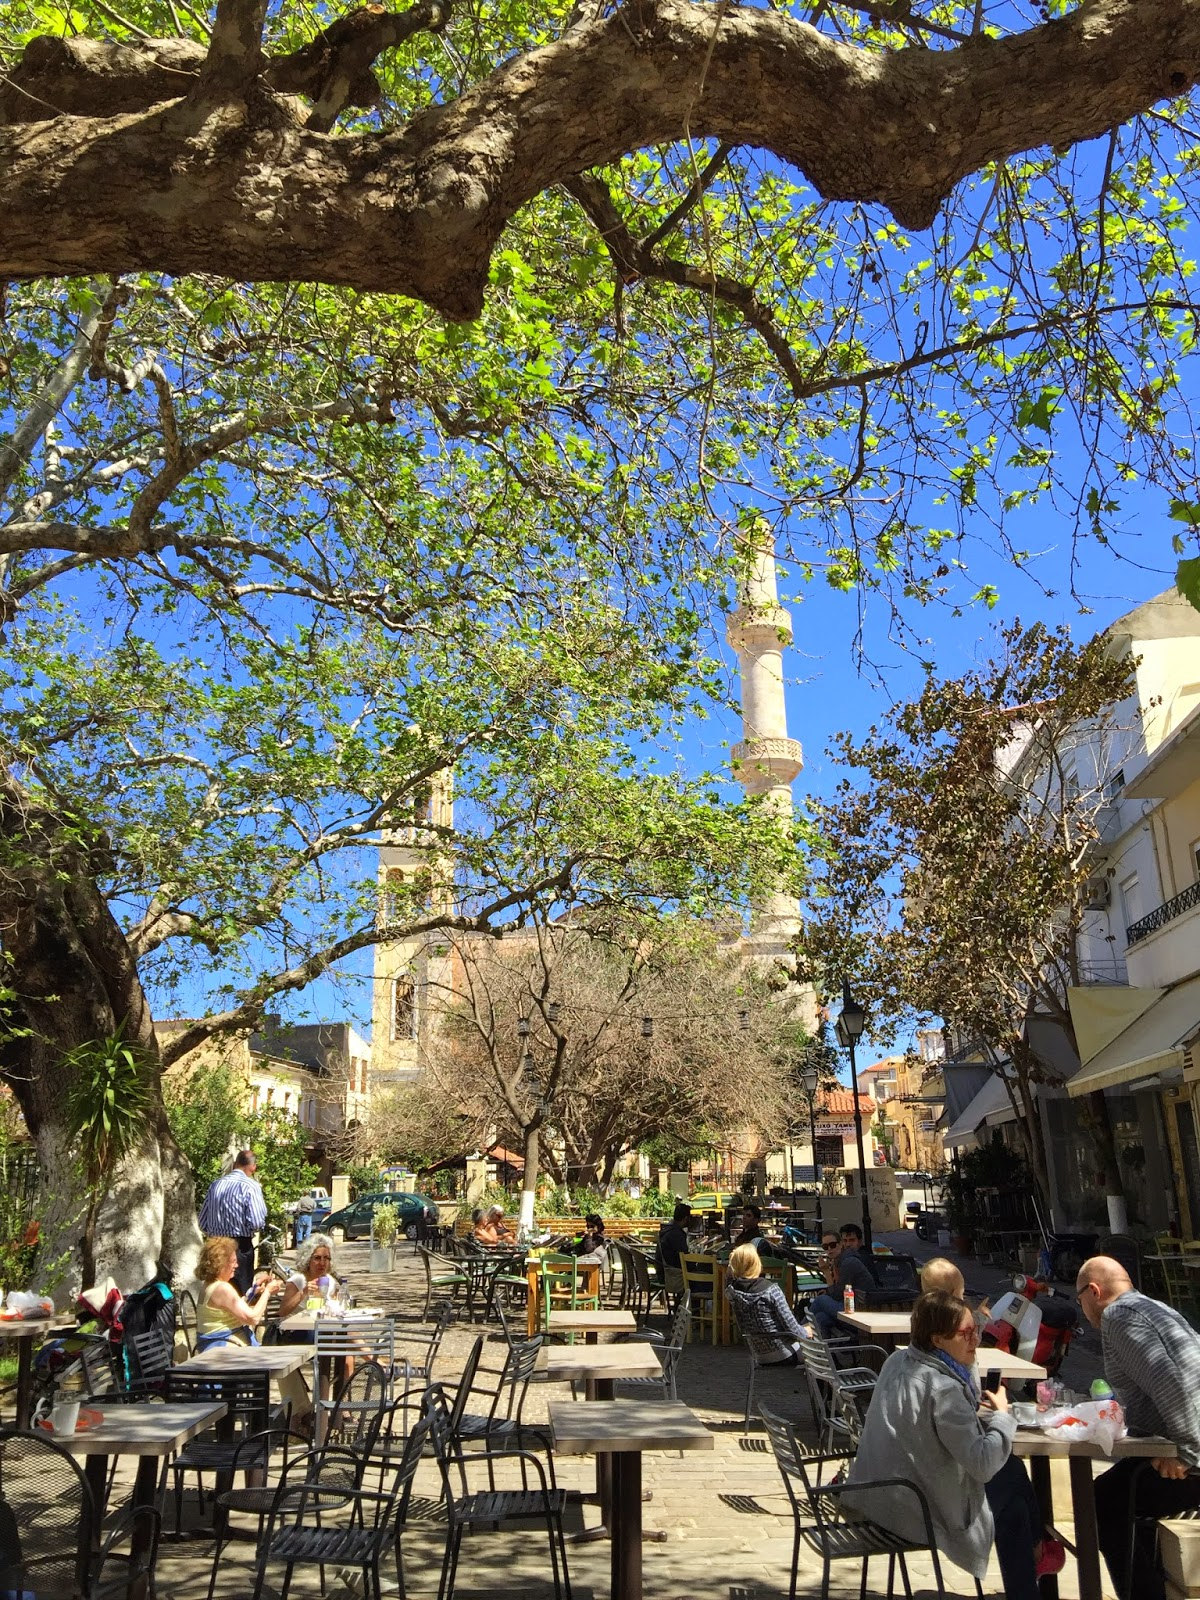 Chania town square on Greek island of Crete